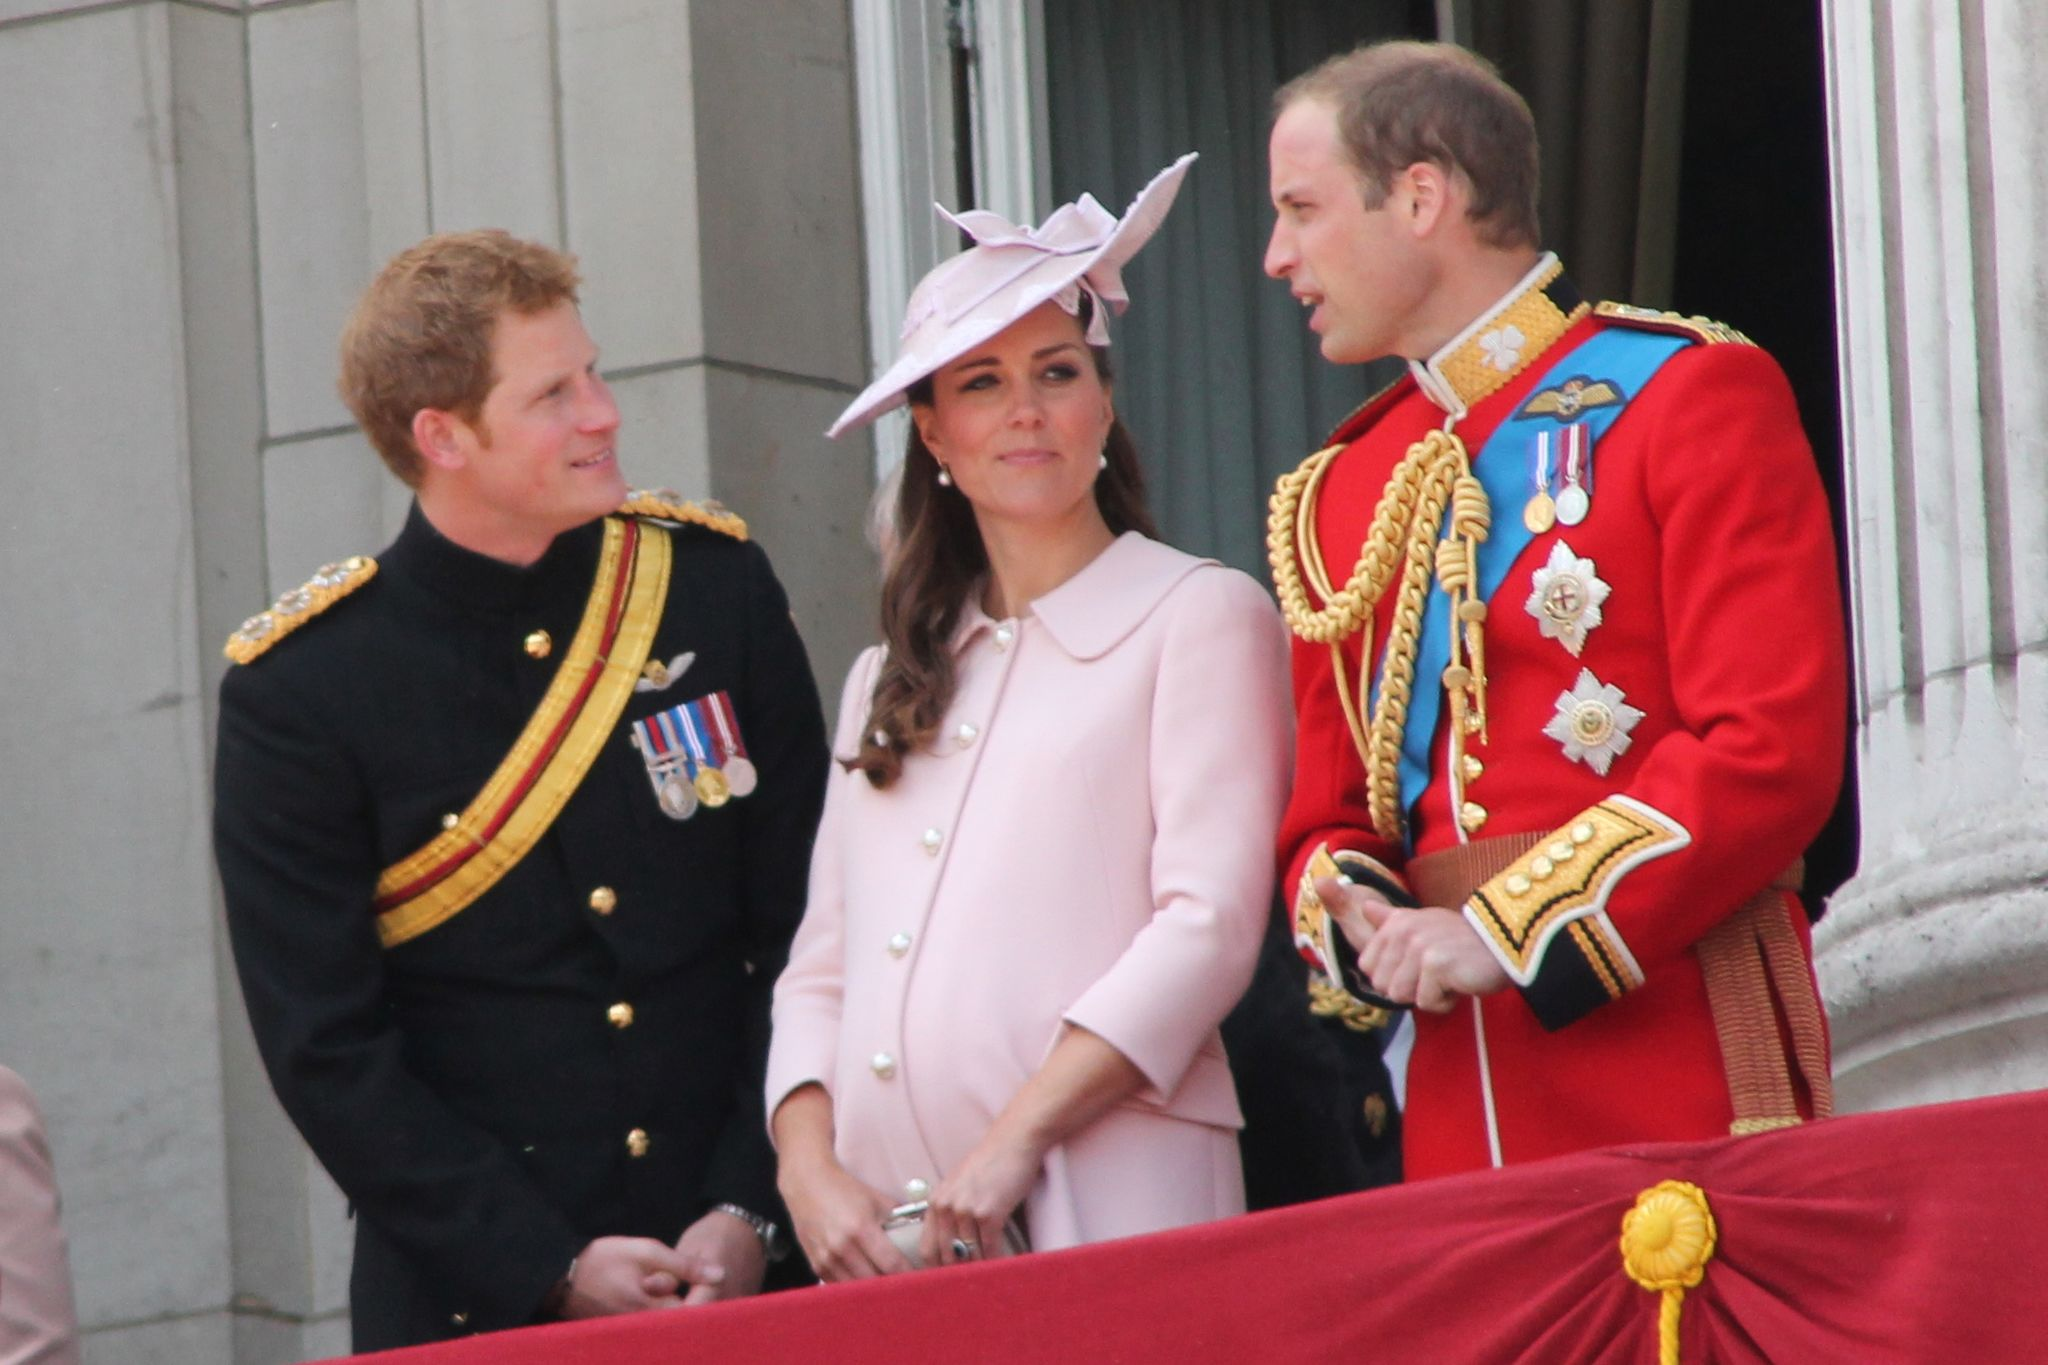 Duke and Duchess of Cambridge and Prince Harry | Source: Wikimedia Commons